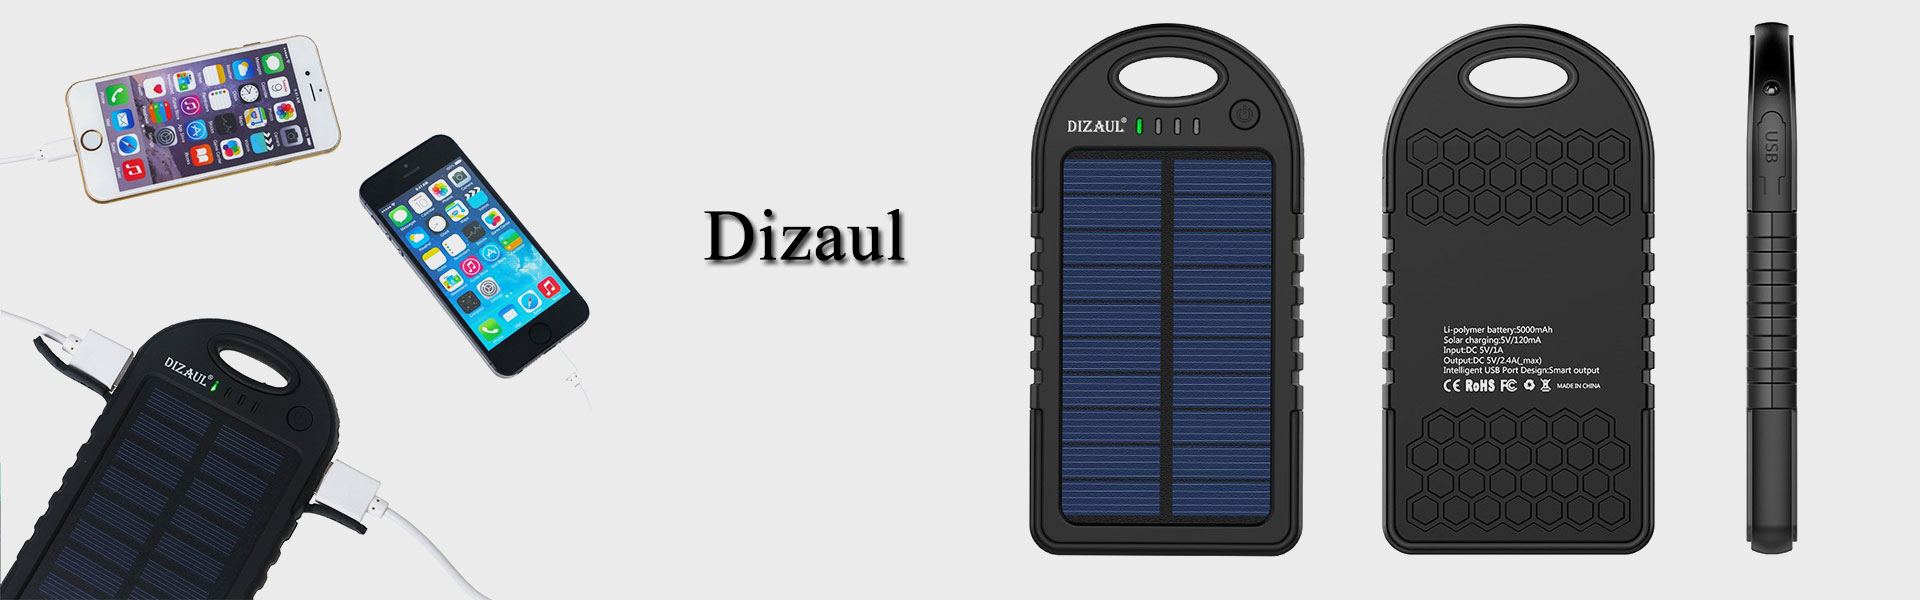 <p>Solar Charger,Dizaul 5000mAh Portable Solar Power Bank Waterproof/Shockproof/Dustproof Dual USB Battery Bank for cell phone,iPhone,Samsung,Android phones,Windows phones,GoPro Camera,GPS and More</p>